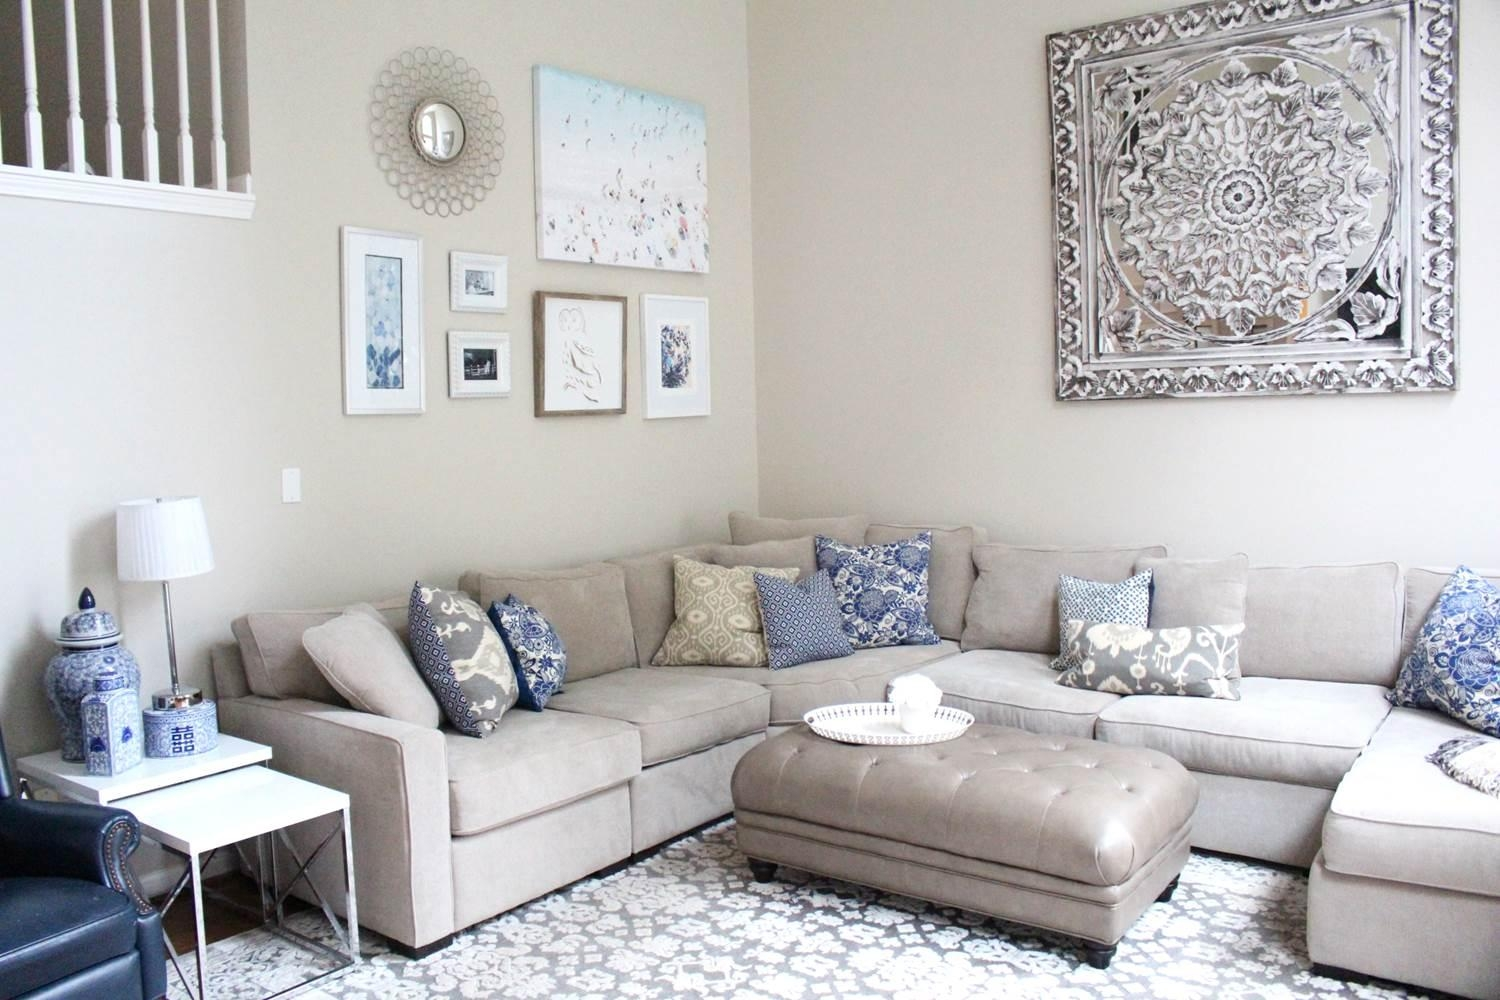 Wall Art For The Living Room – Modern House Within Wall Arts For Living Room (Image 18 of 20)